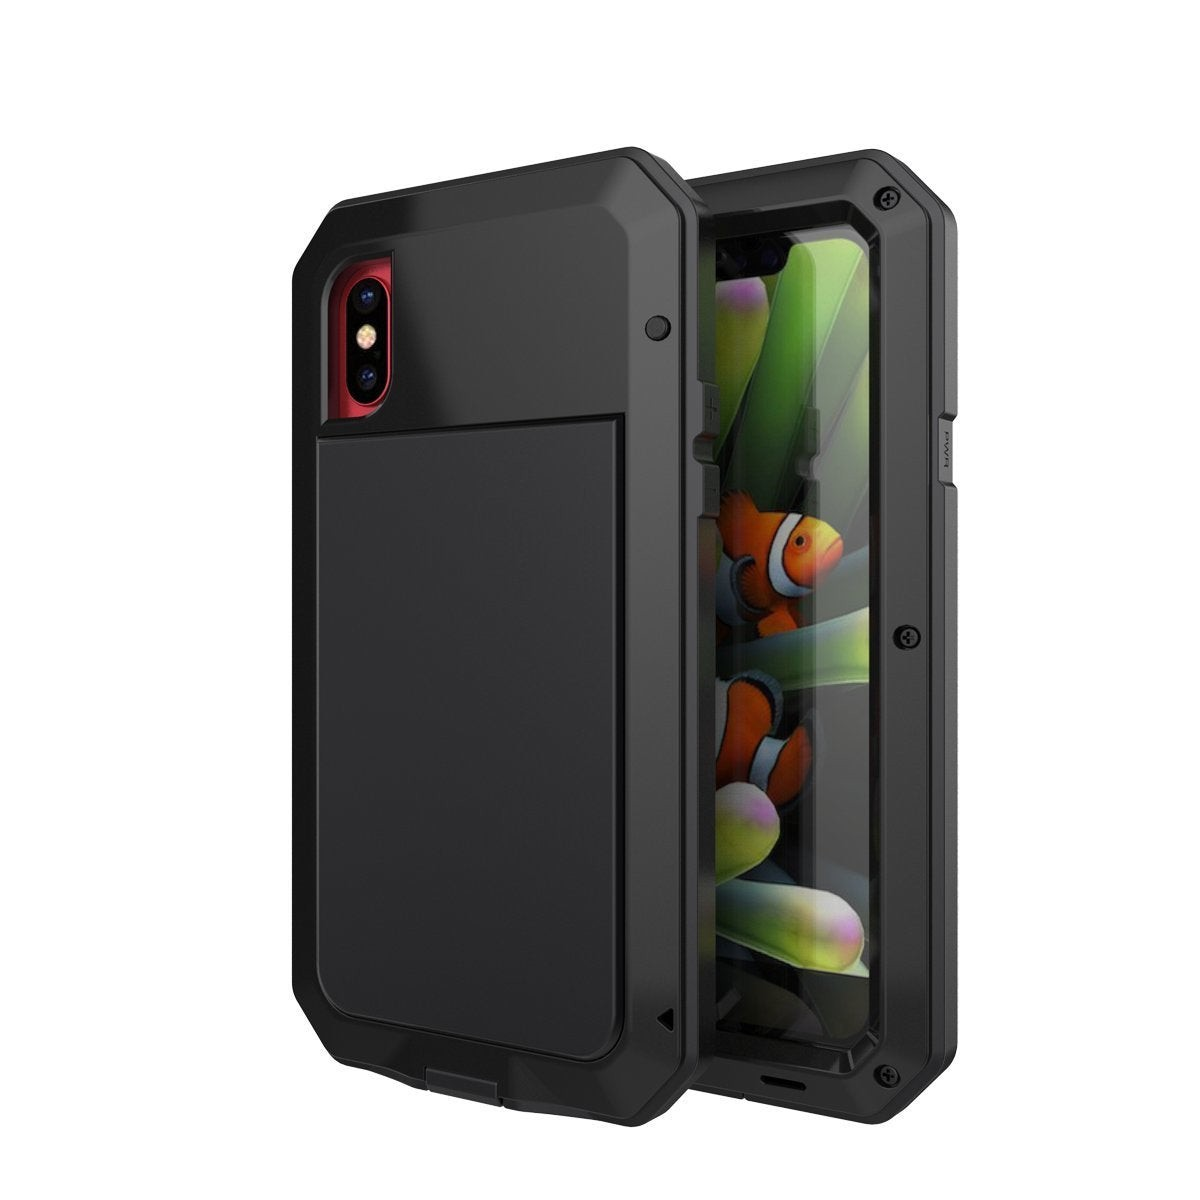 Gorilla Glass Aluminum Alloy Heavy Duty Shockproof Case Apple iPhone X, XS, XR, or XS Max